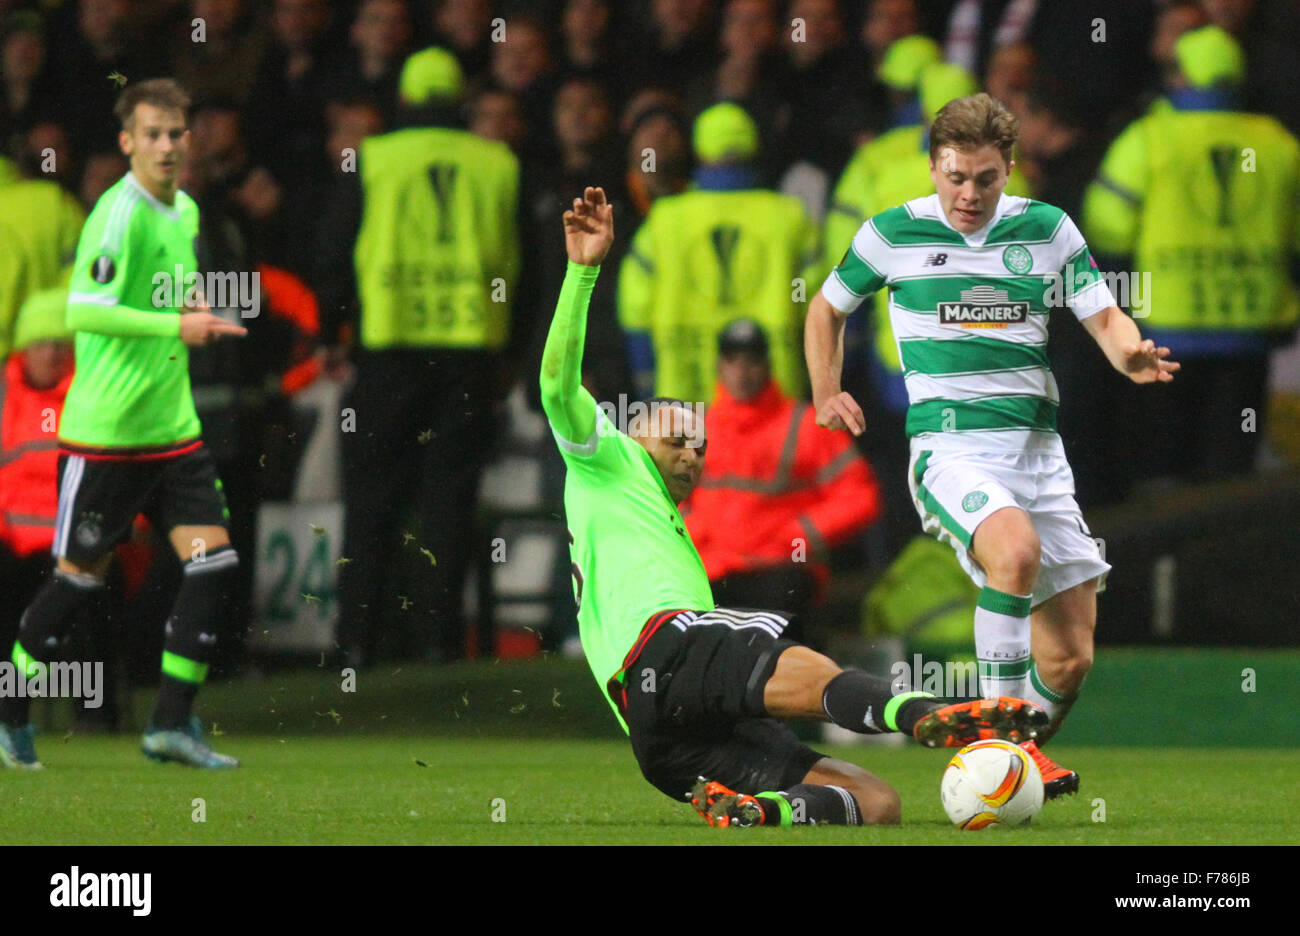 Glasgow, Scotland. 26th Nov, 2015. Europa League. Celtic versus Ajax. James Forrest is tackled by Kenny Tete Credit: - Stock Image